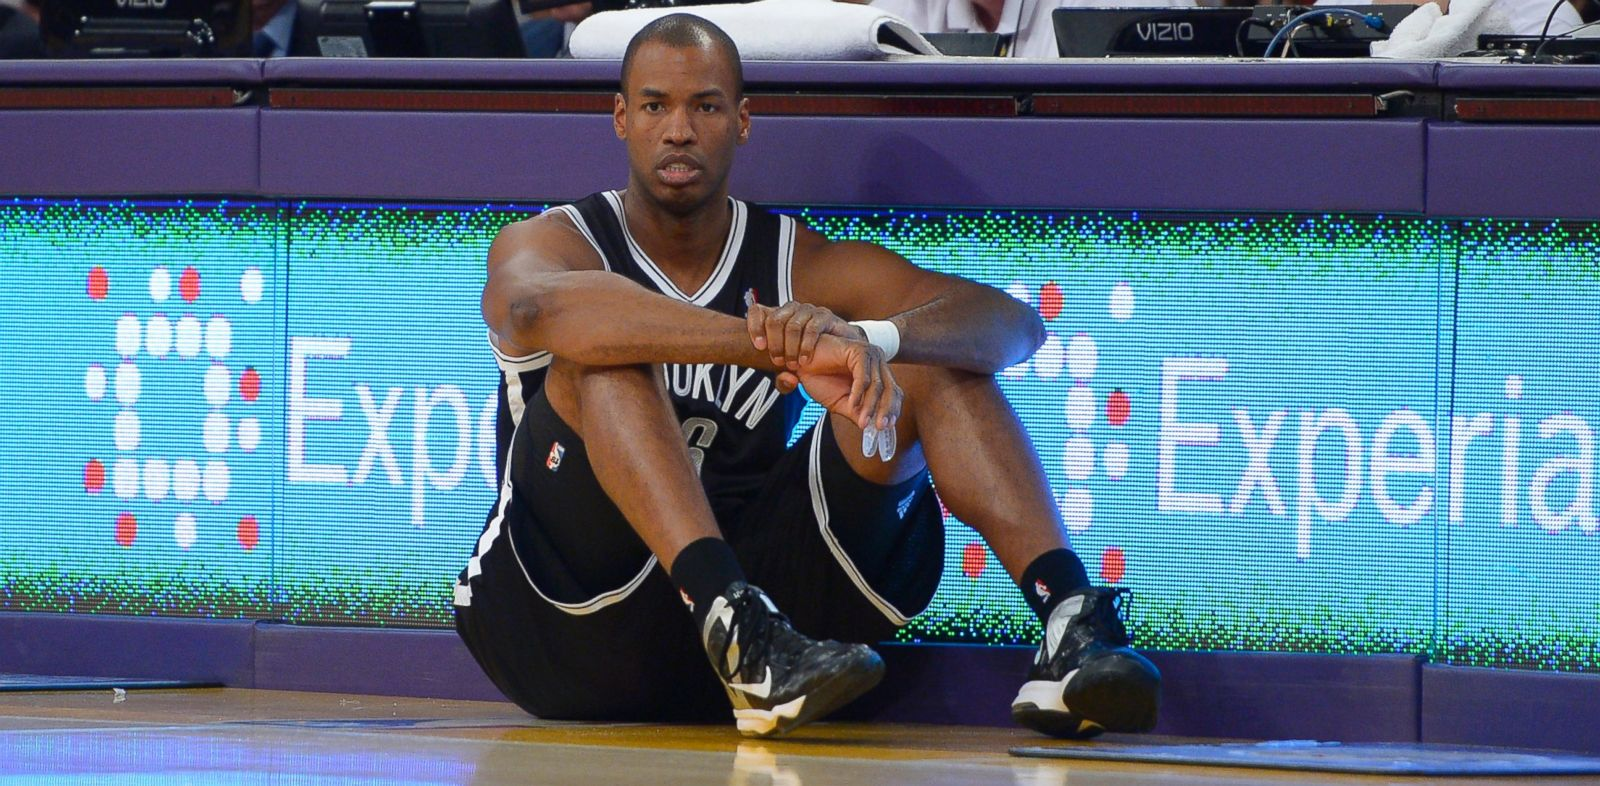 PHOTO: Brooklyn Nets center Jason Collins waits to come into the game during the second half of an NBA basketball game against the Los Angeles Lakers, Sunday, Feb. 23, 2014, in Los Angeles.